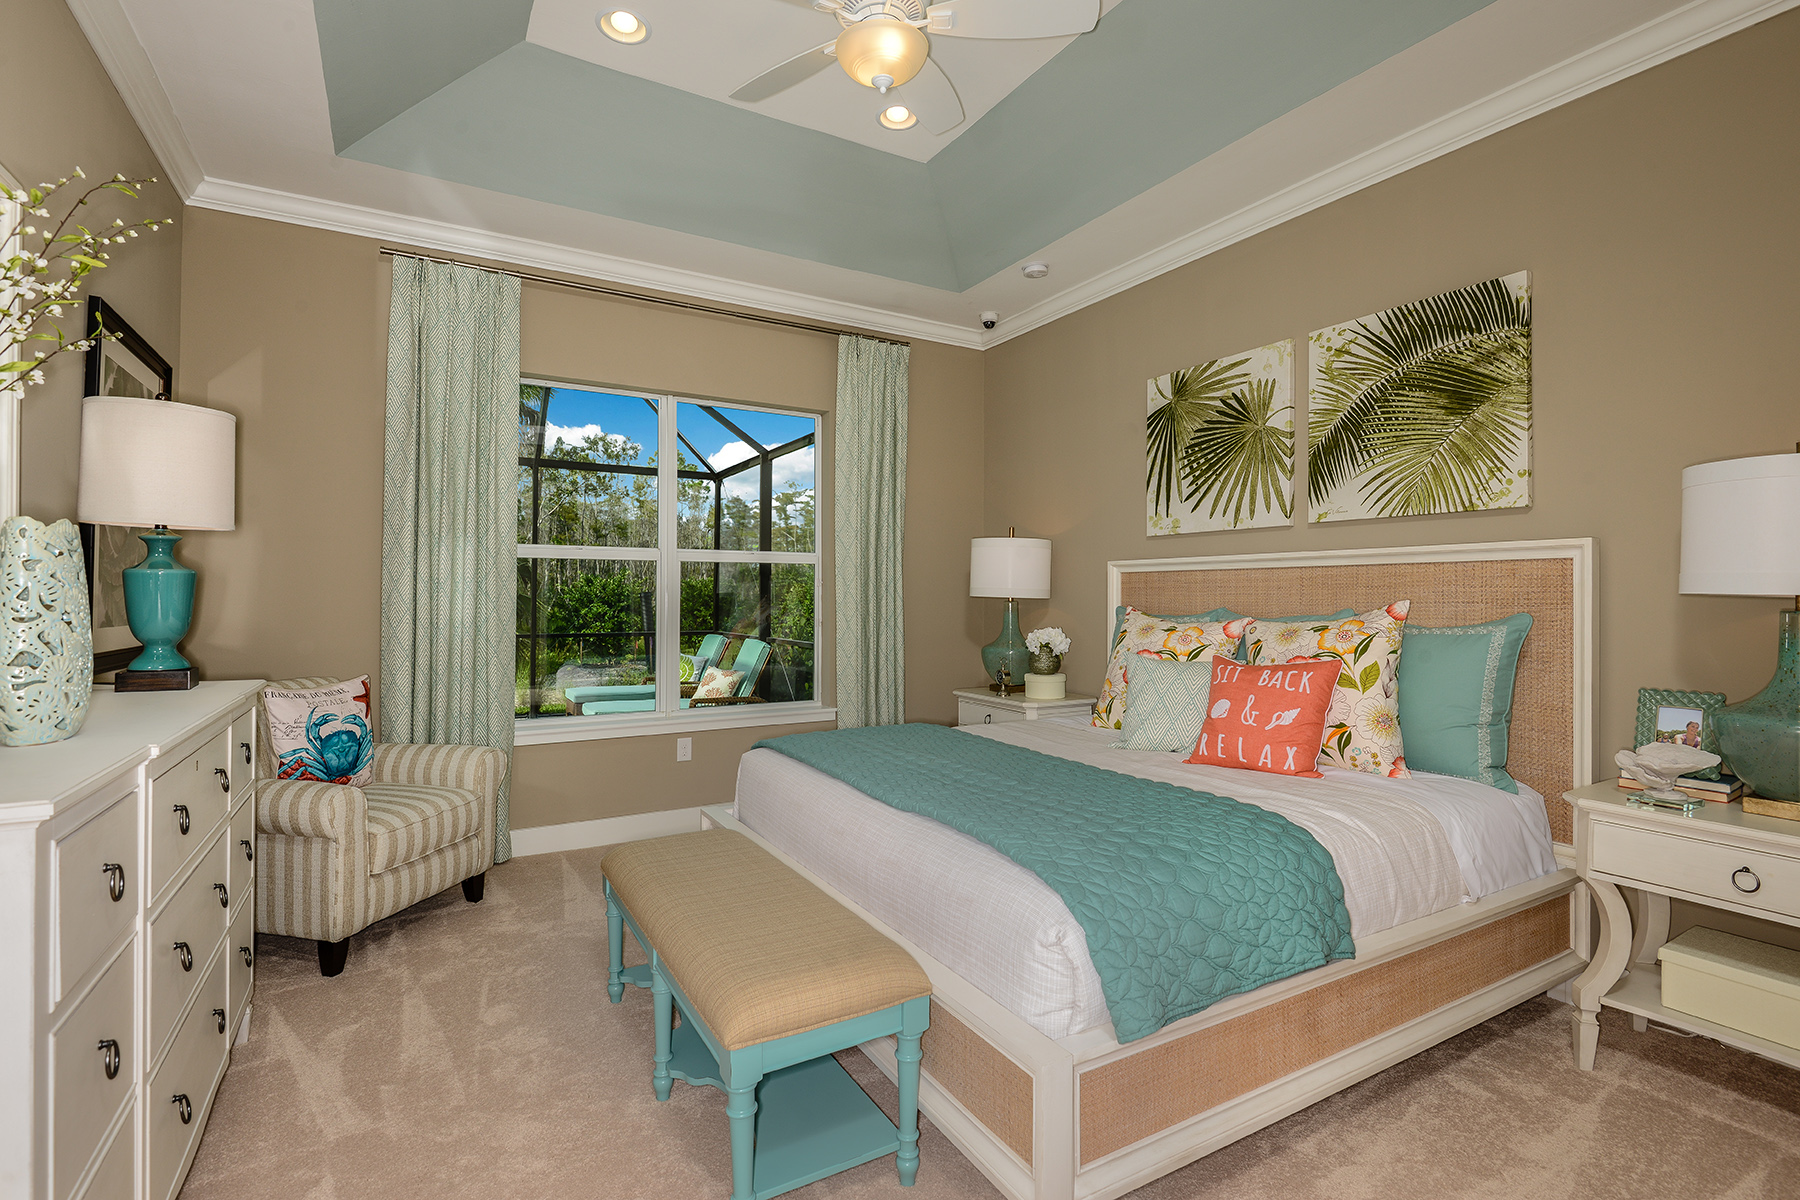 Banyan Plan Bedroom at Compass Landing in Naples Florida by Mattamy Homes